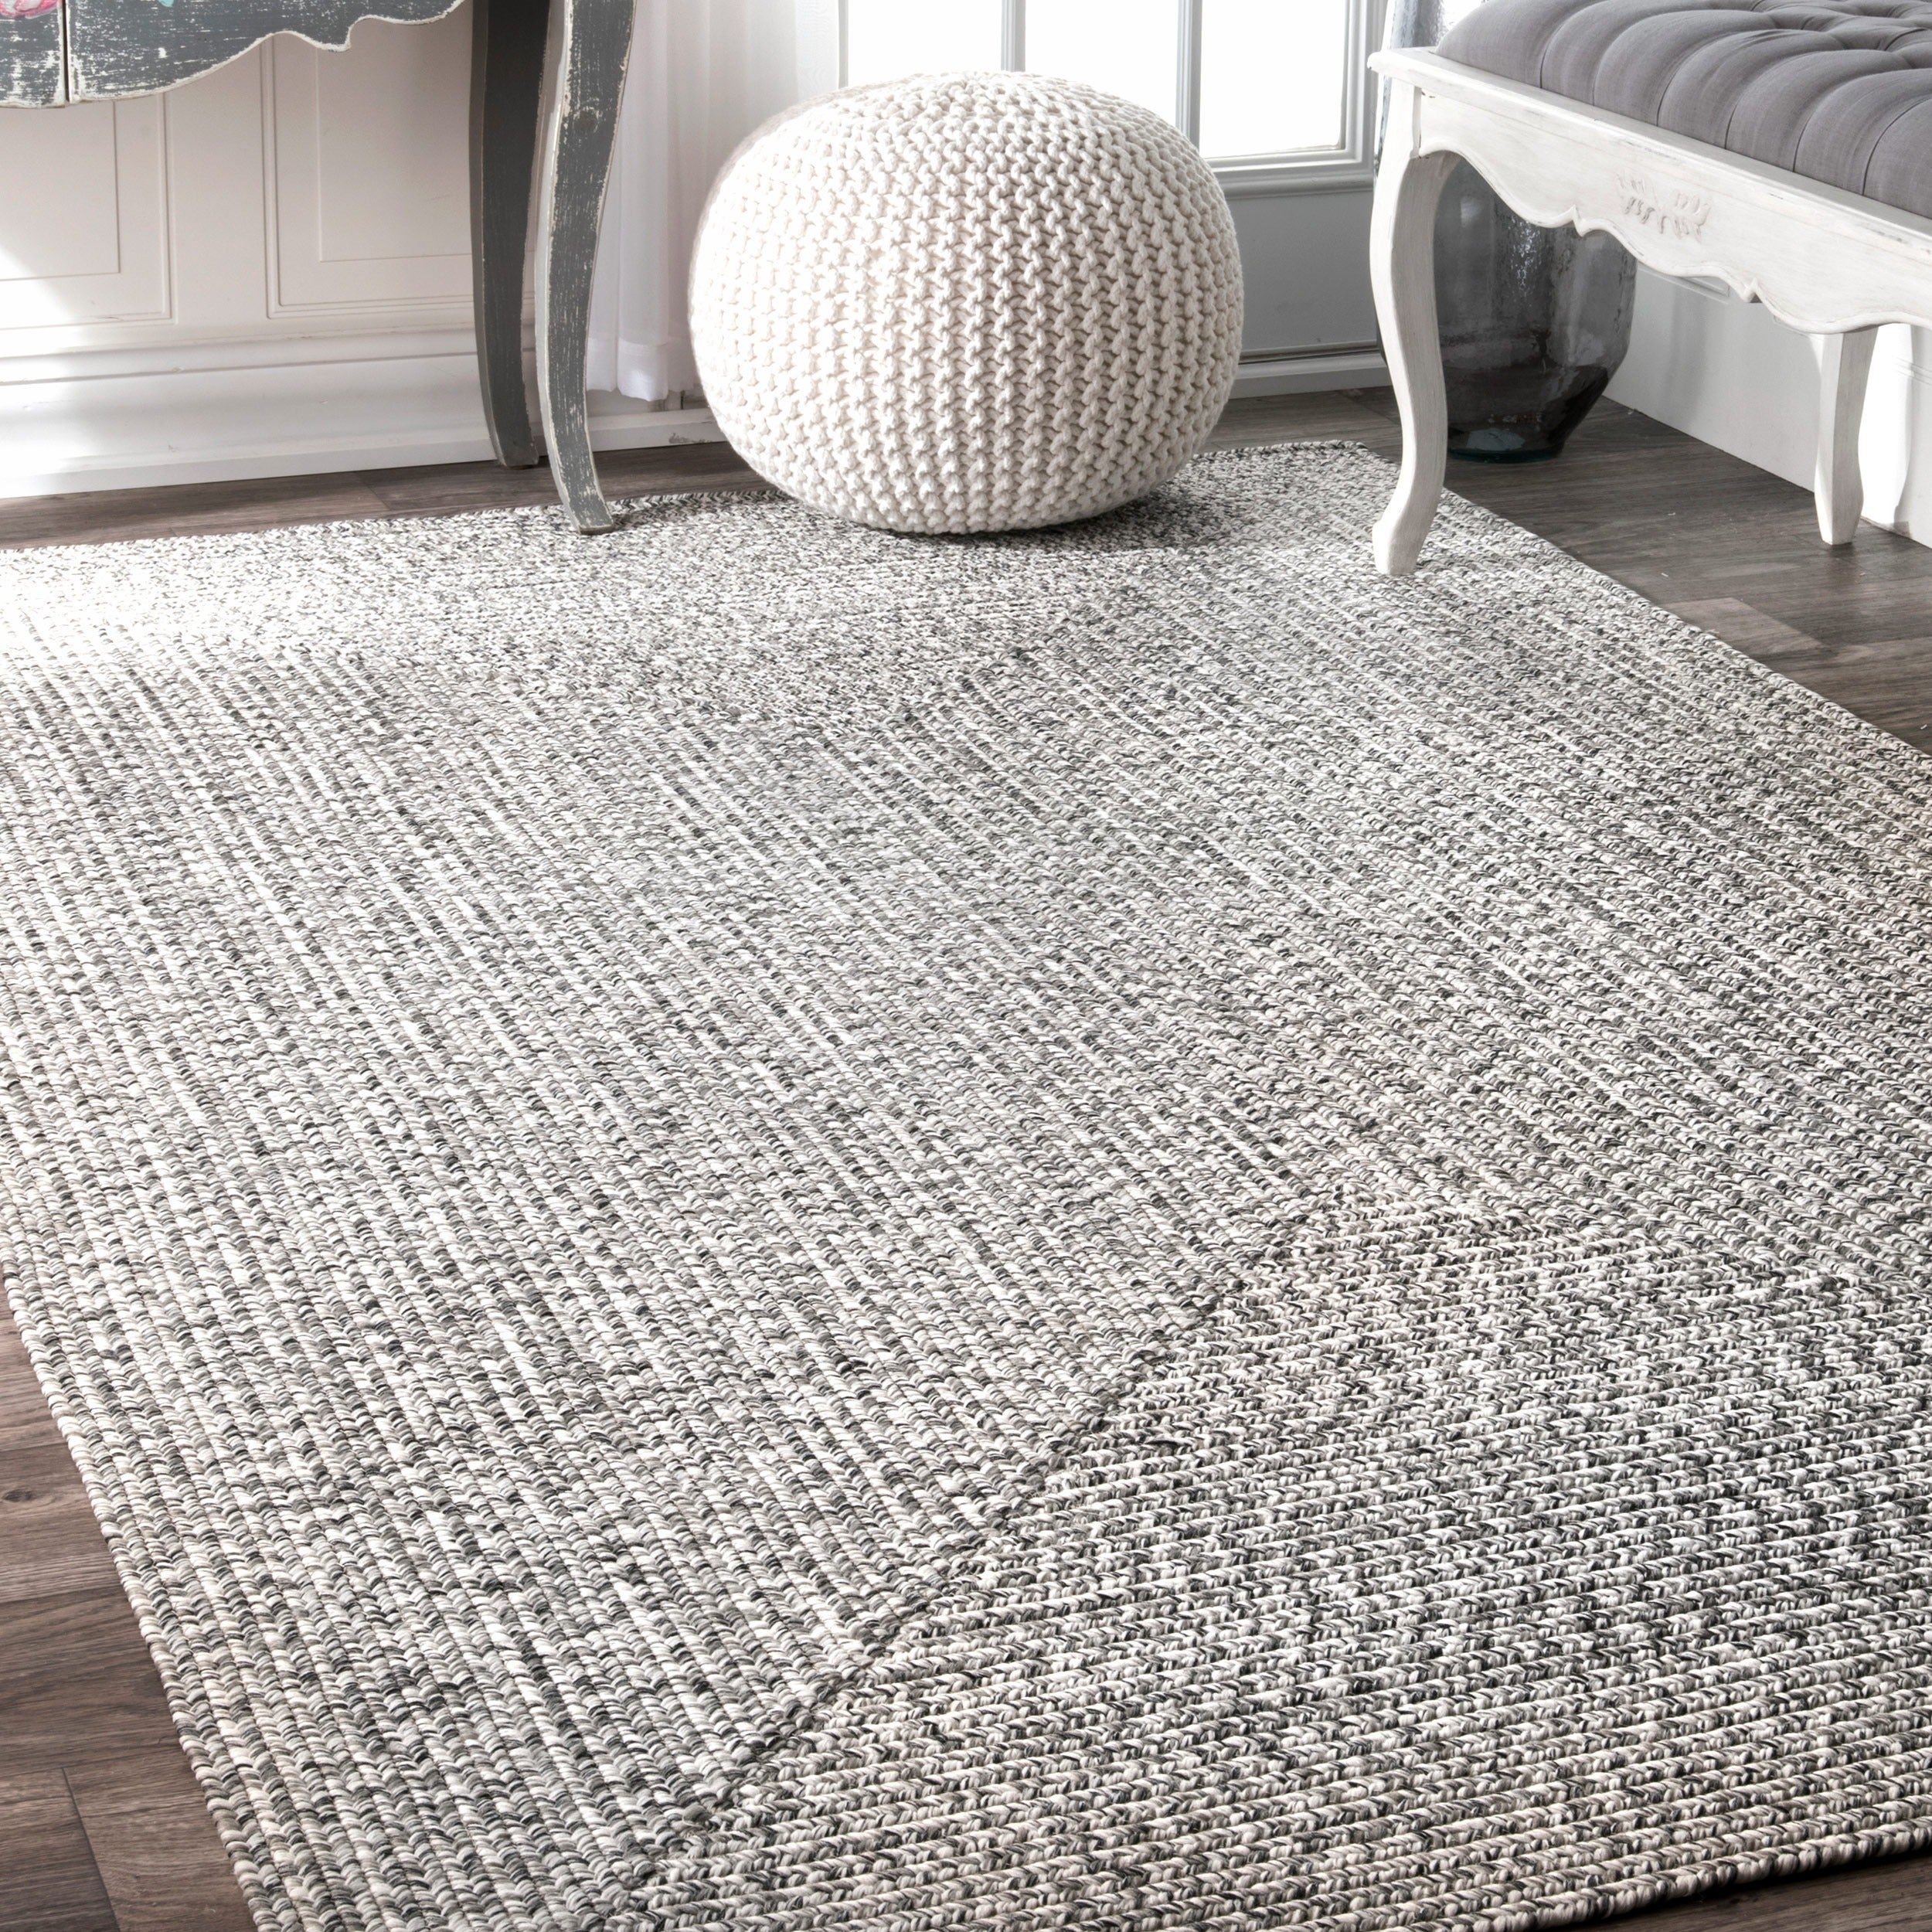 8x10 Indoor Outdoor Area Rugs: Shop NuLoom Grey Indoor/ Outdoor Braided Area Rug (4' X 6